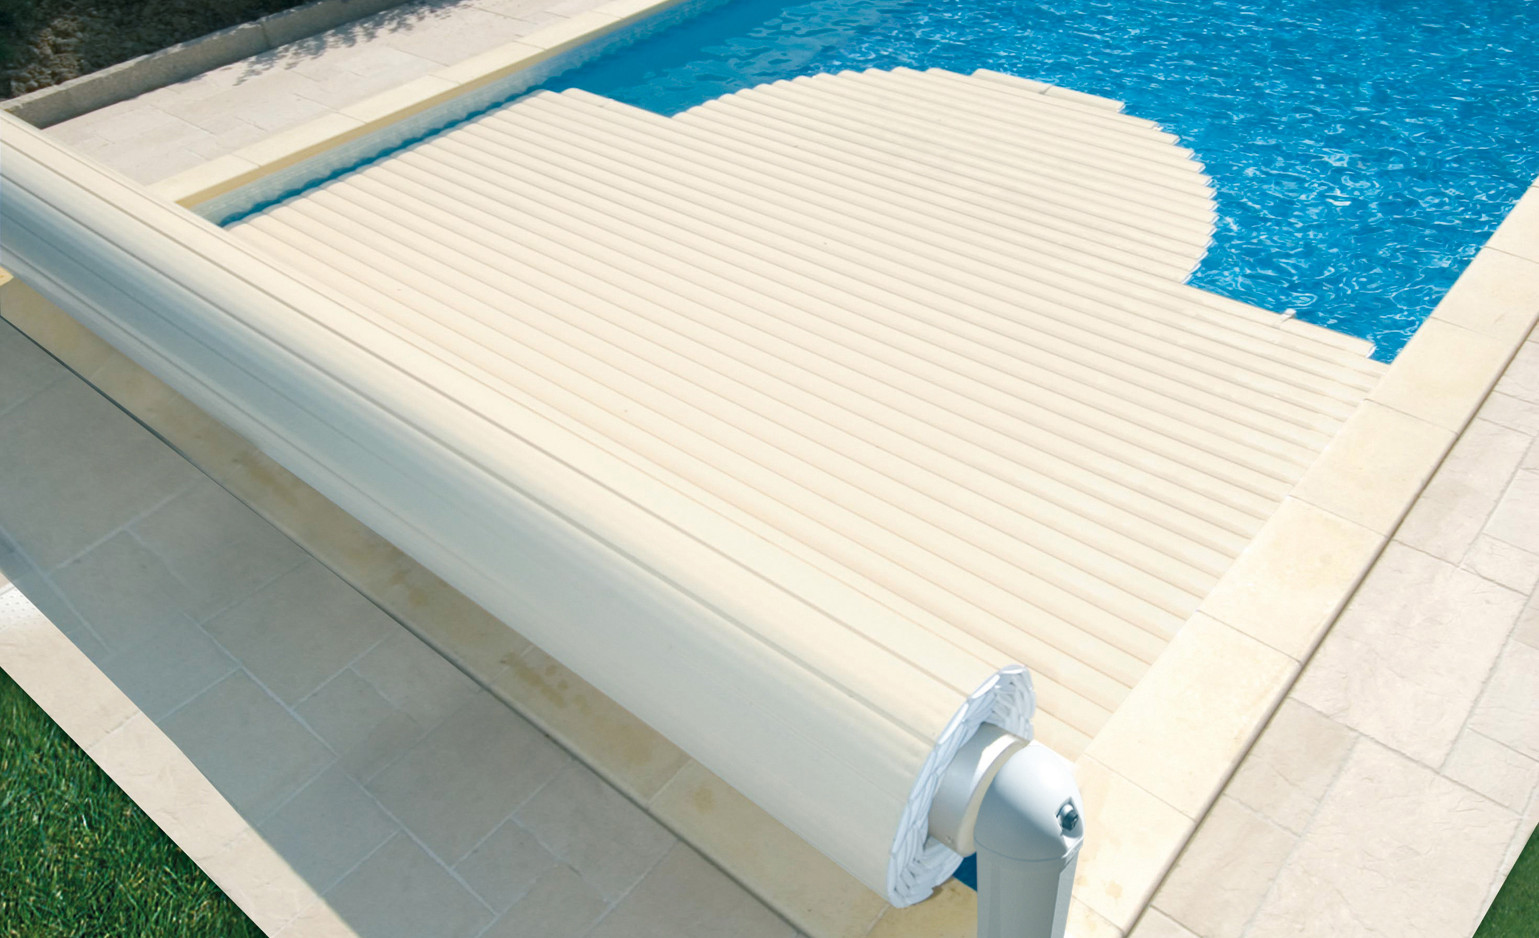 Couverture de piscine hors-sol par Coverline